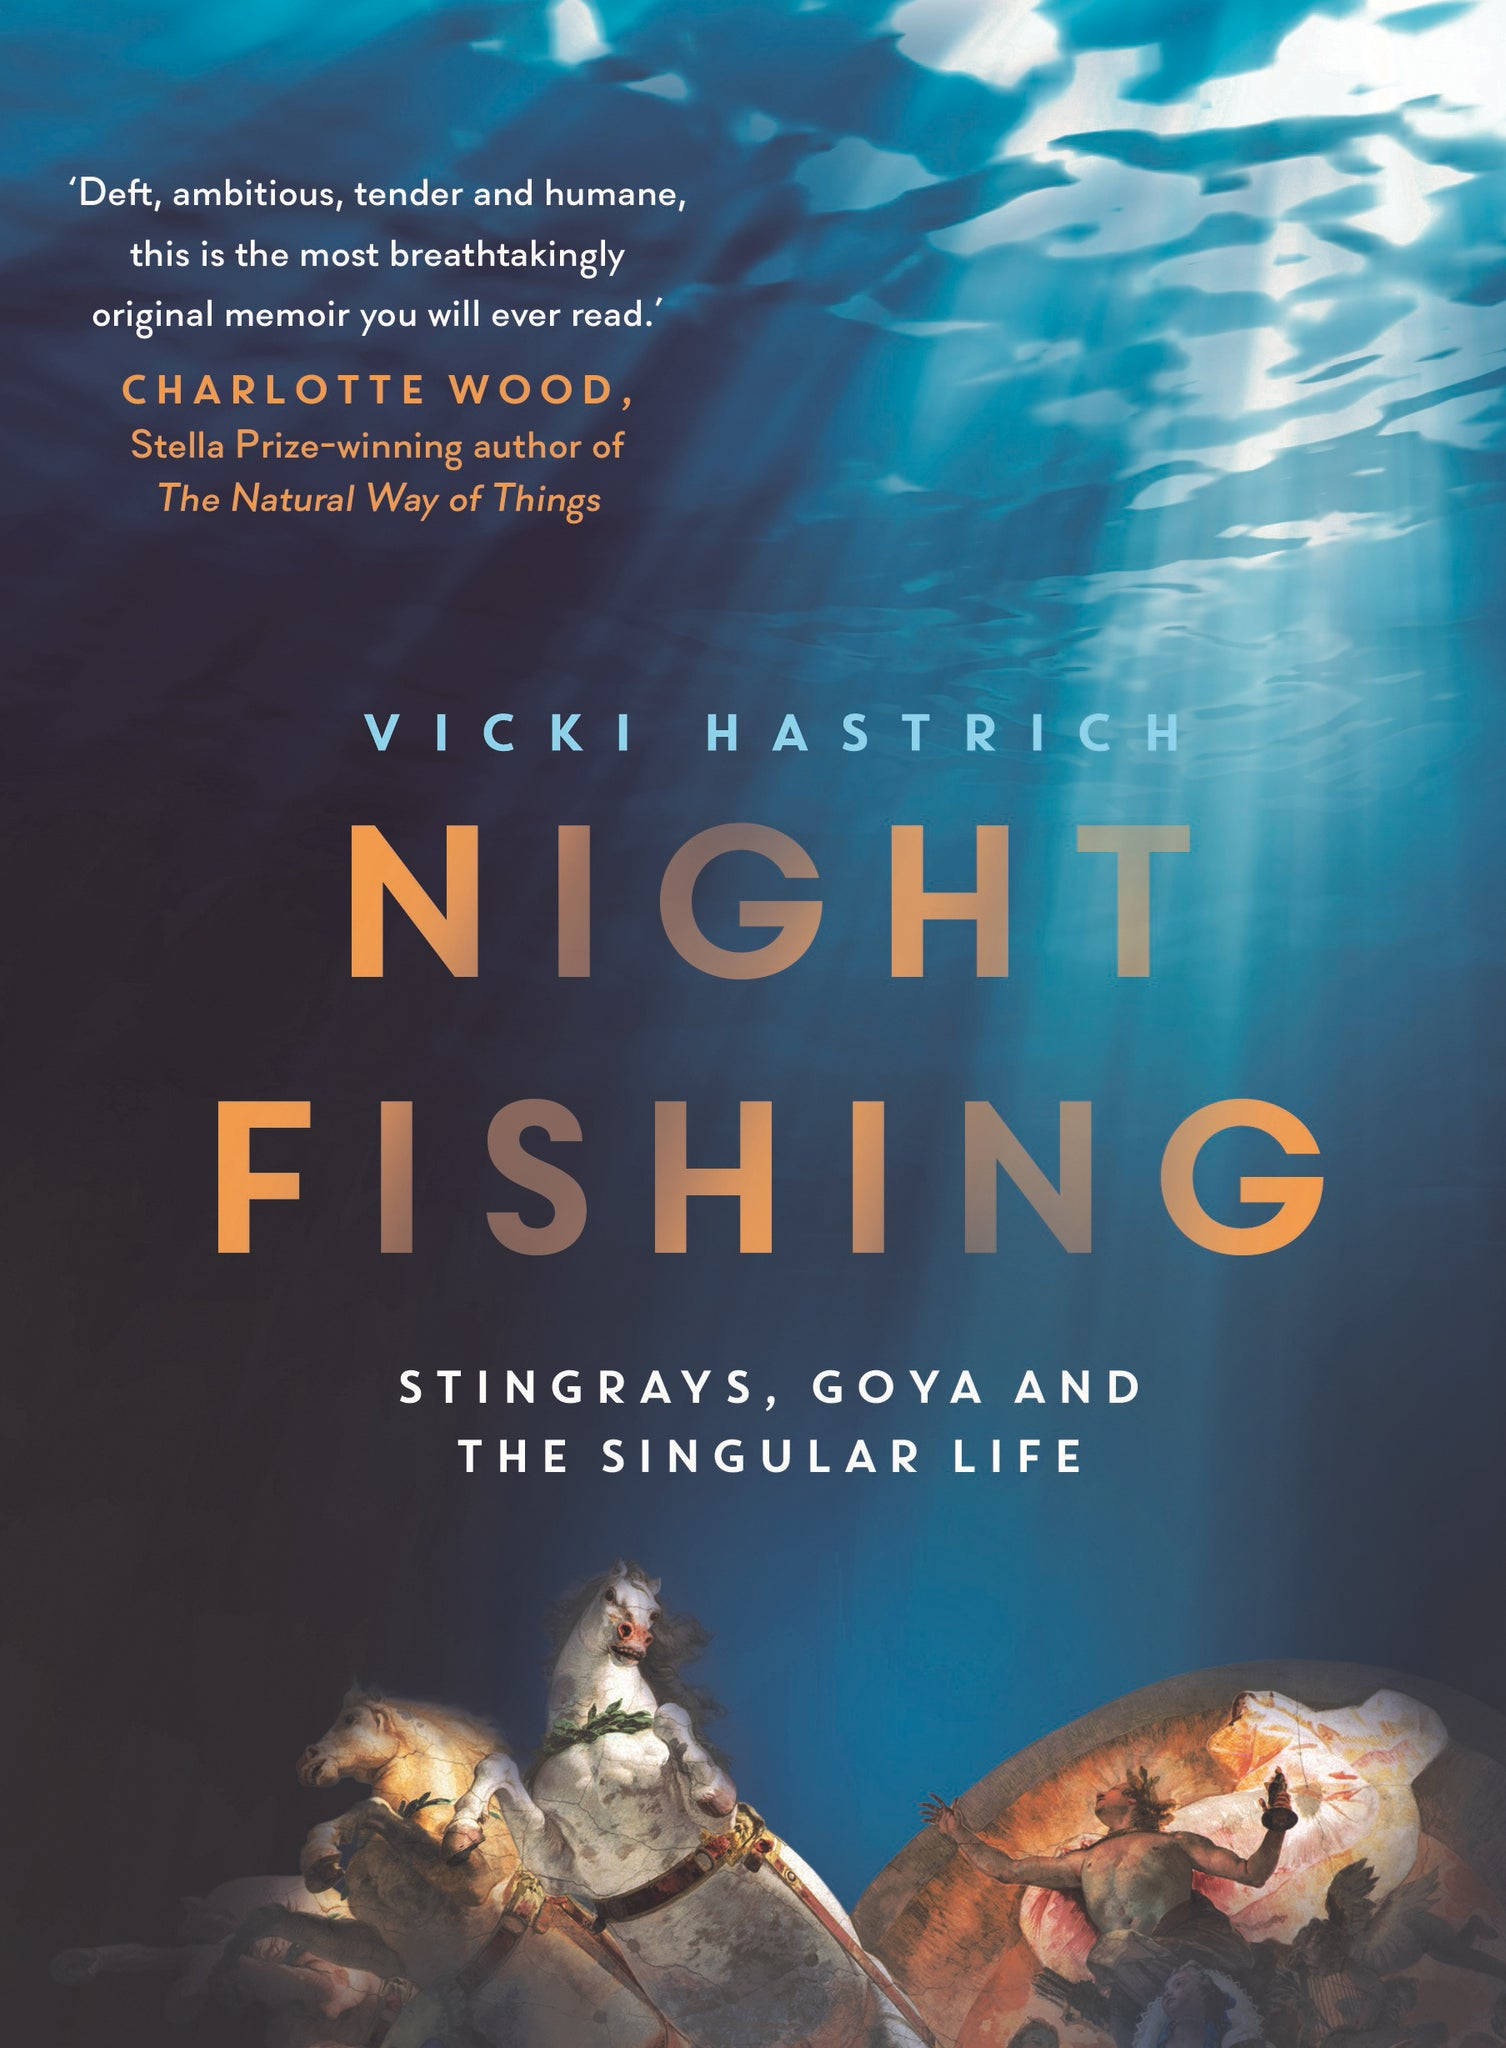 Night Fishing: Stingrays, Goya and the Singular Life